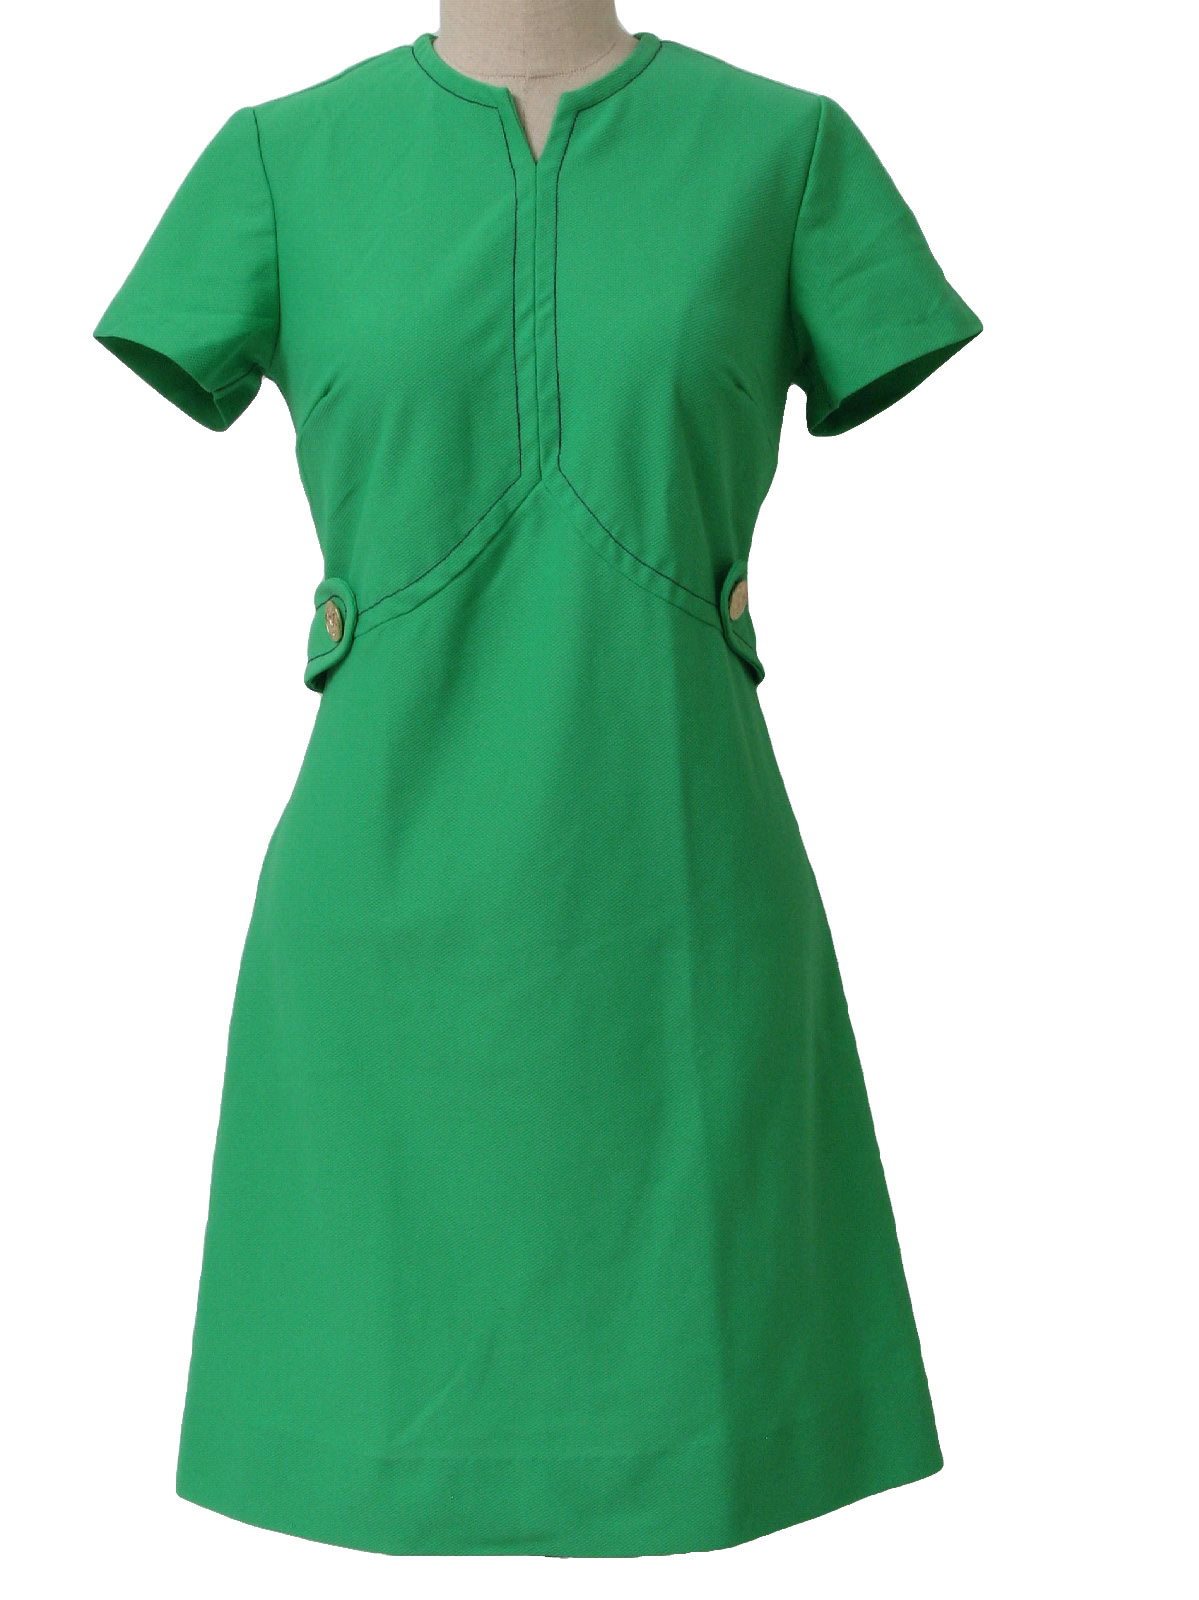 Shop our Collection of Women's Green Dresses at lalikoric.gq for the Latest Designer Brands & Styles. FREE SHIPPING AVAILABLE!